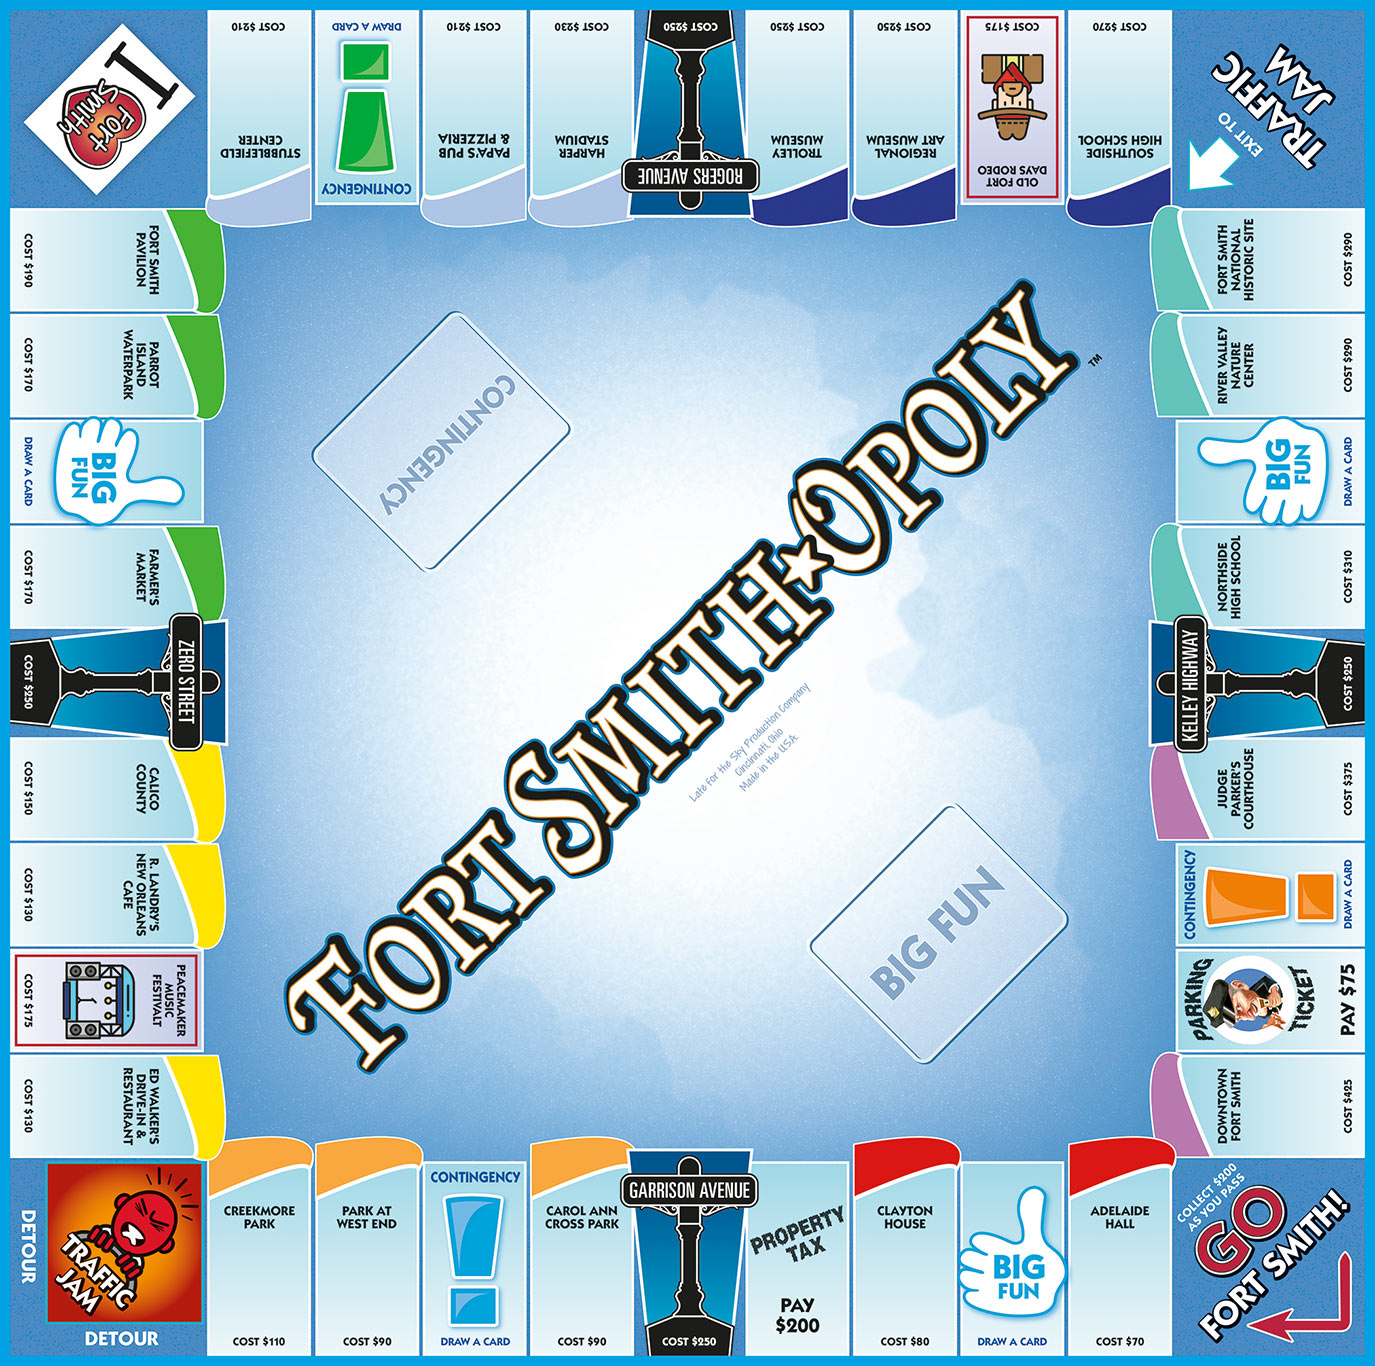 FORT SMITH-OPOLY Board Game